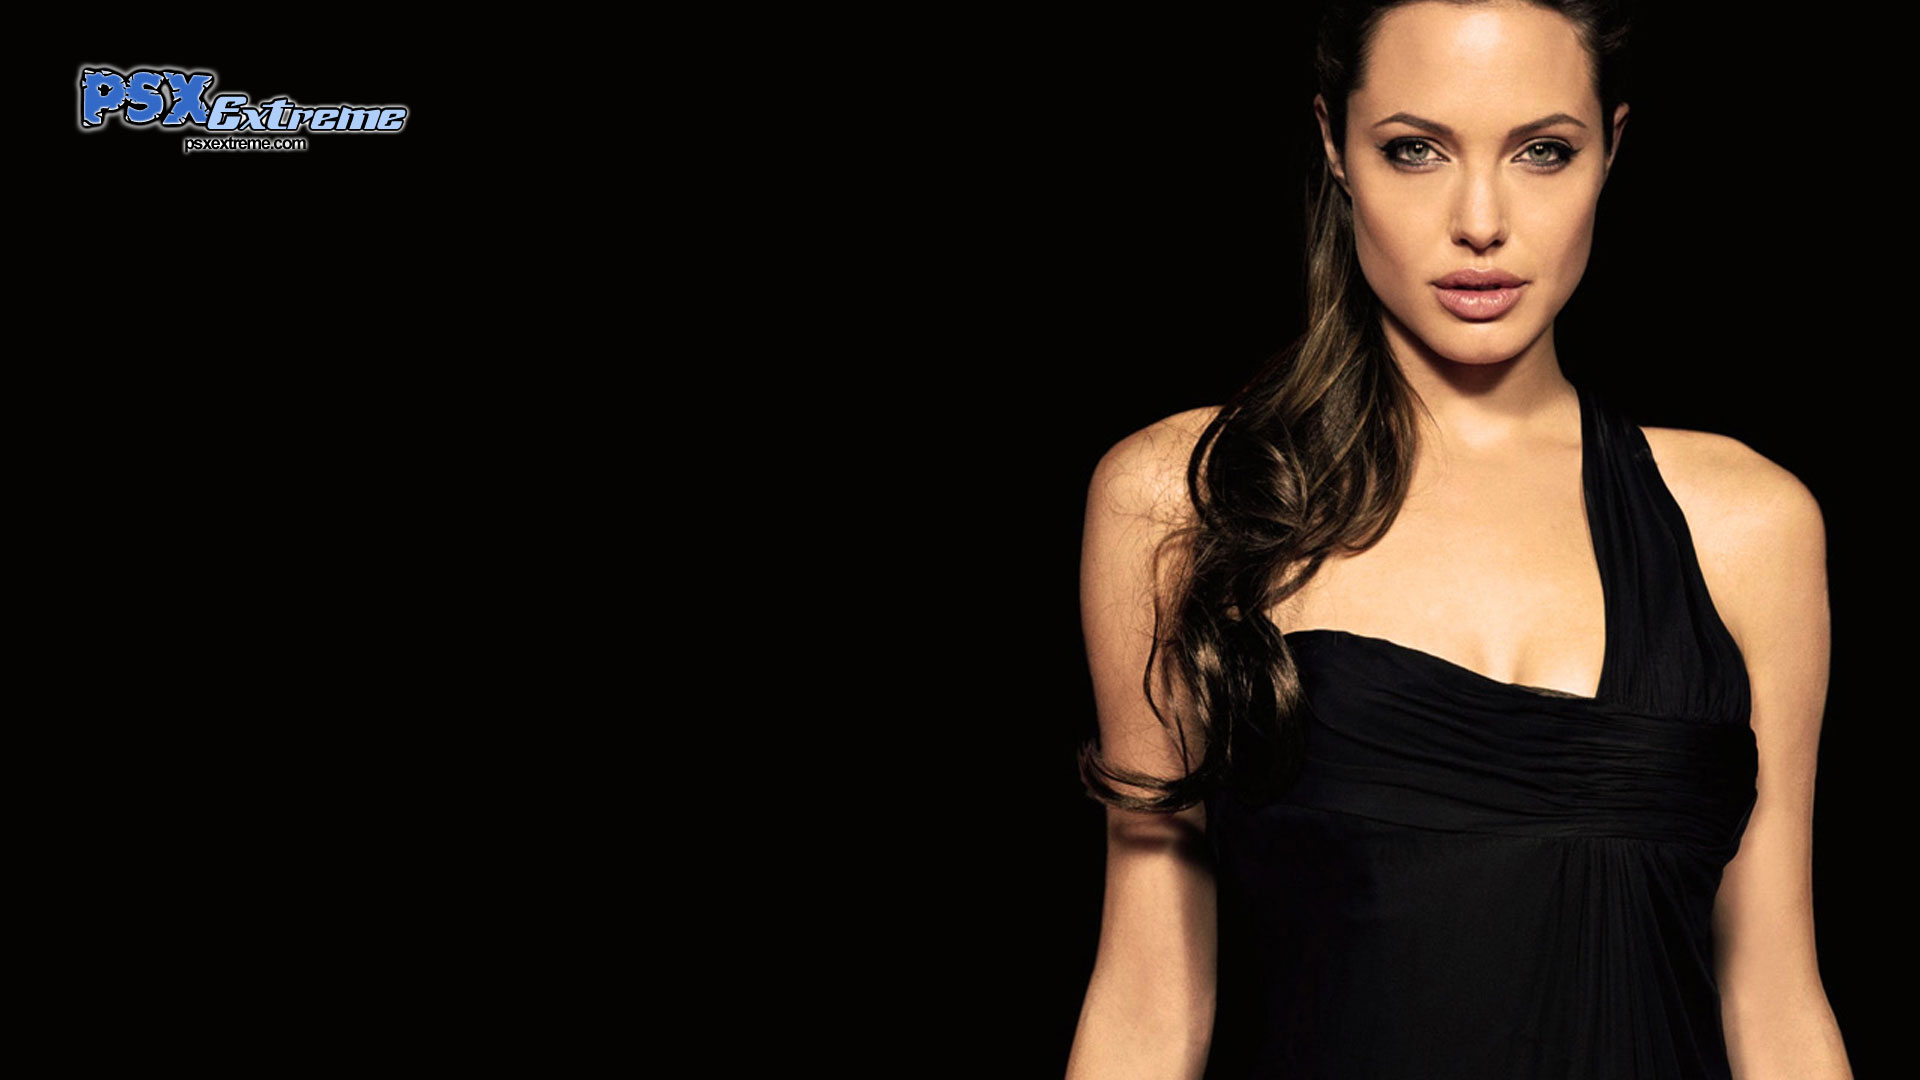 Angelina-Jolie-wallpaper-wp3802389